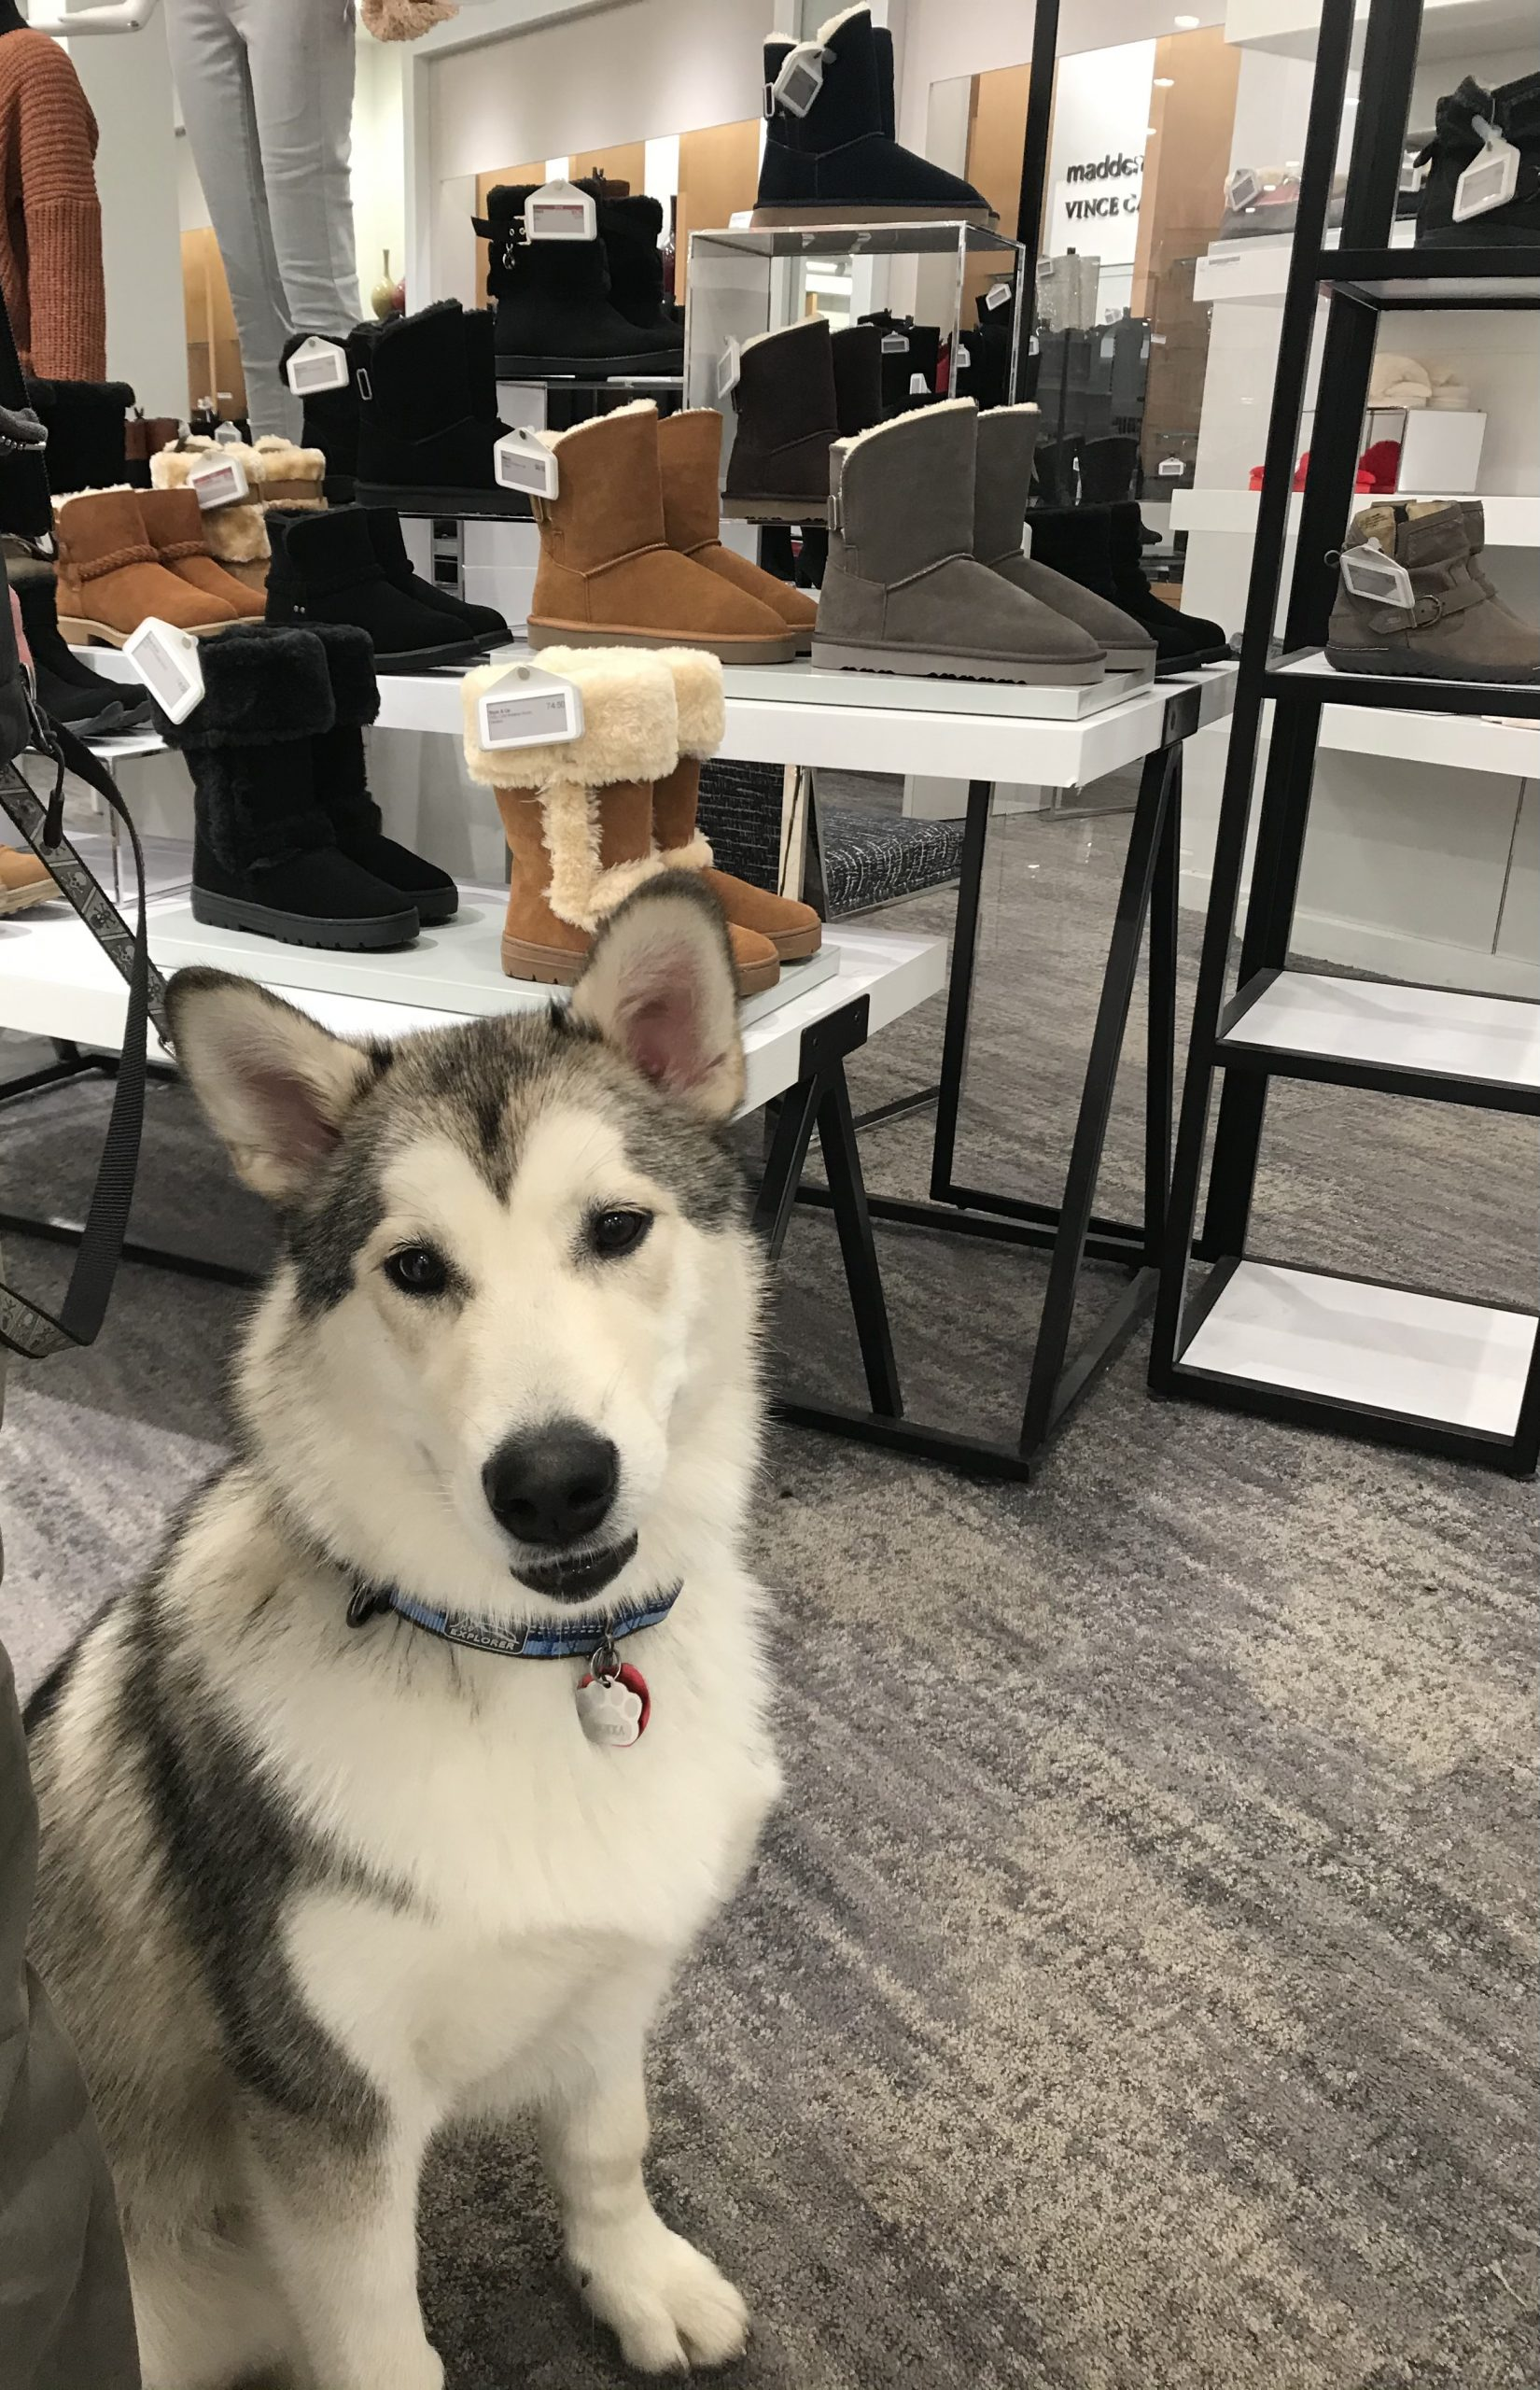 A black and white Alaskan Malamute named Nukka sits in front of a display of winter boots in Macy's.